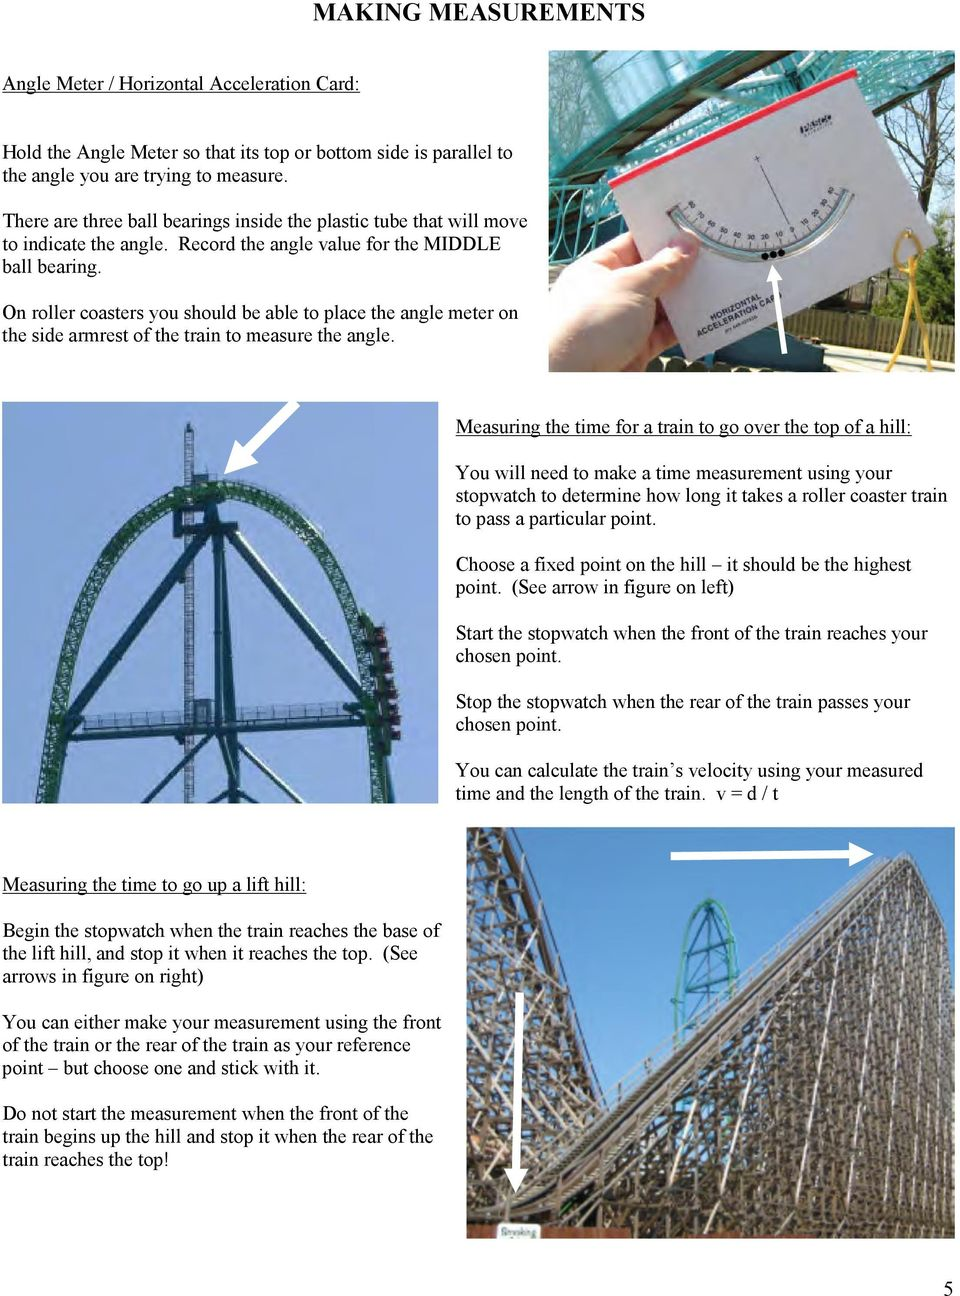 Physics Workbook 2013 Edition Written By Tom Paterson Pdf Roller Coaster Train Diagram On Coasters You Should Be Able To Place The Angle Meter Side Armrest